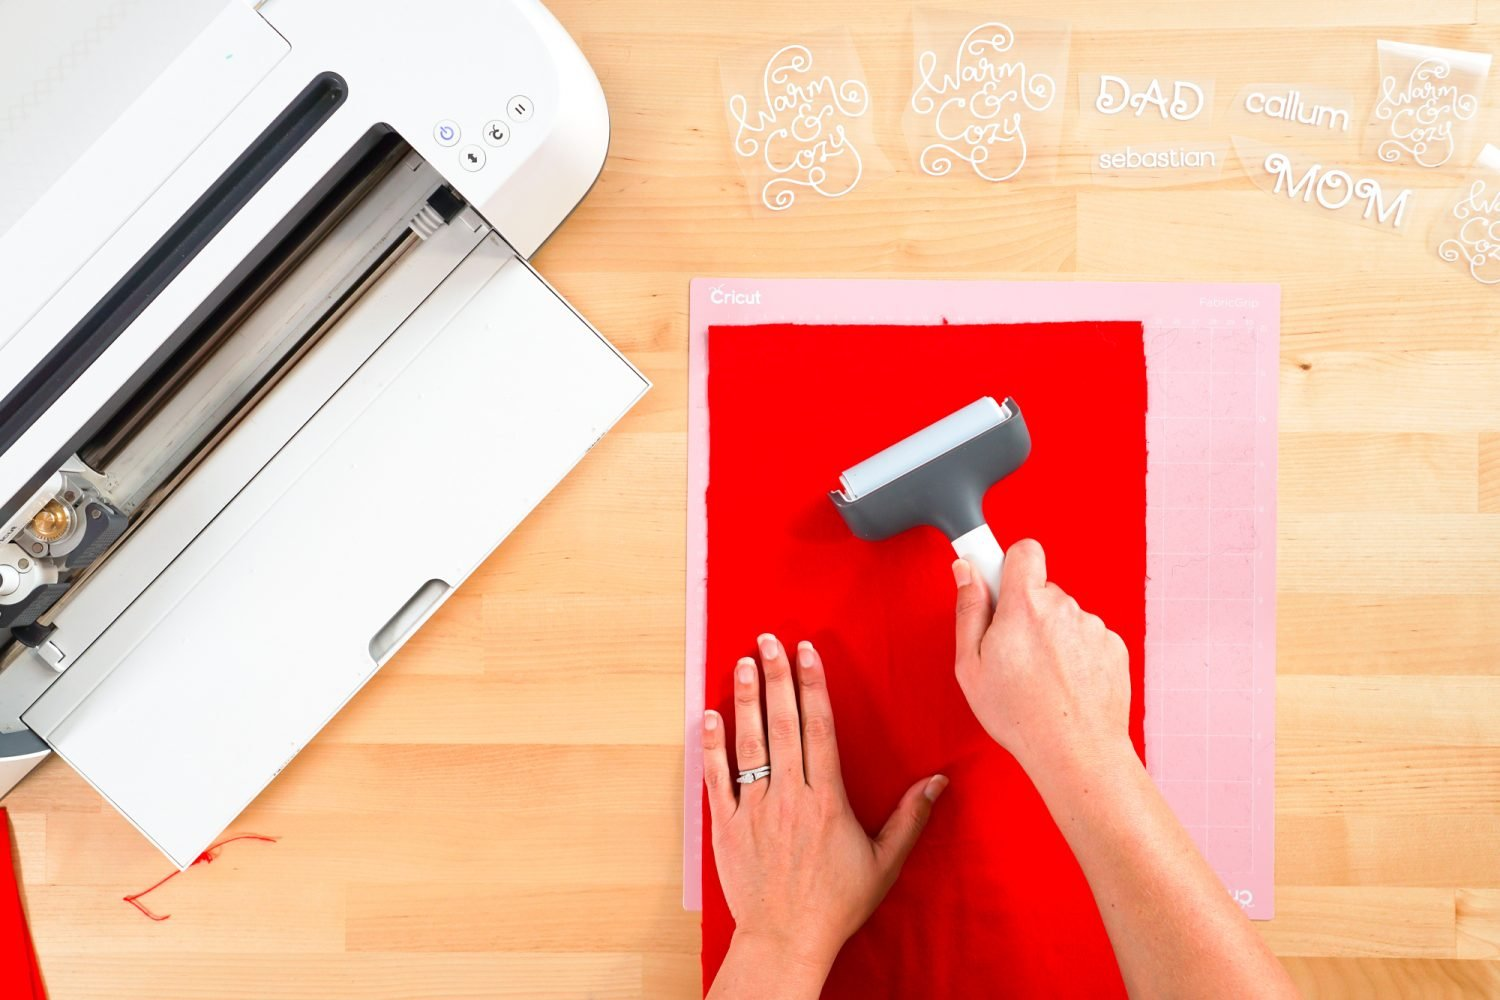 Hands using a brayer to put red flannel on Cricut mat